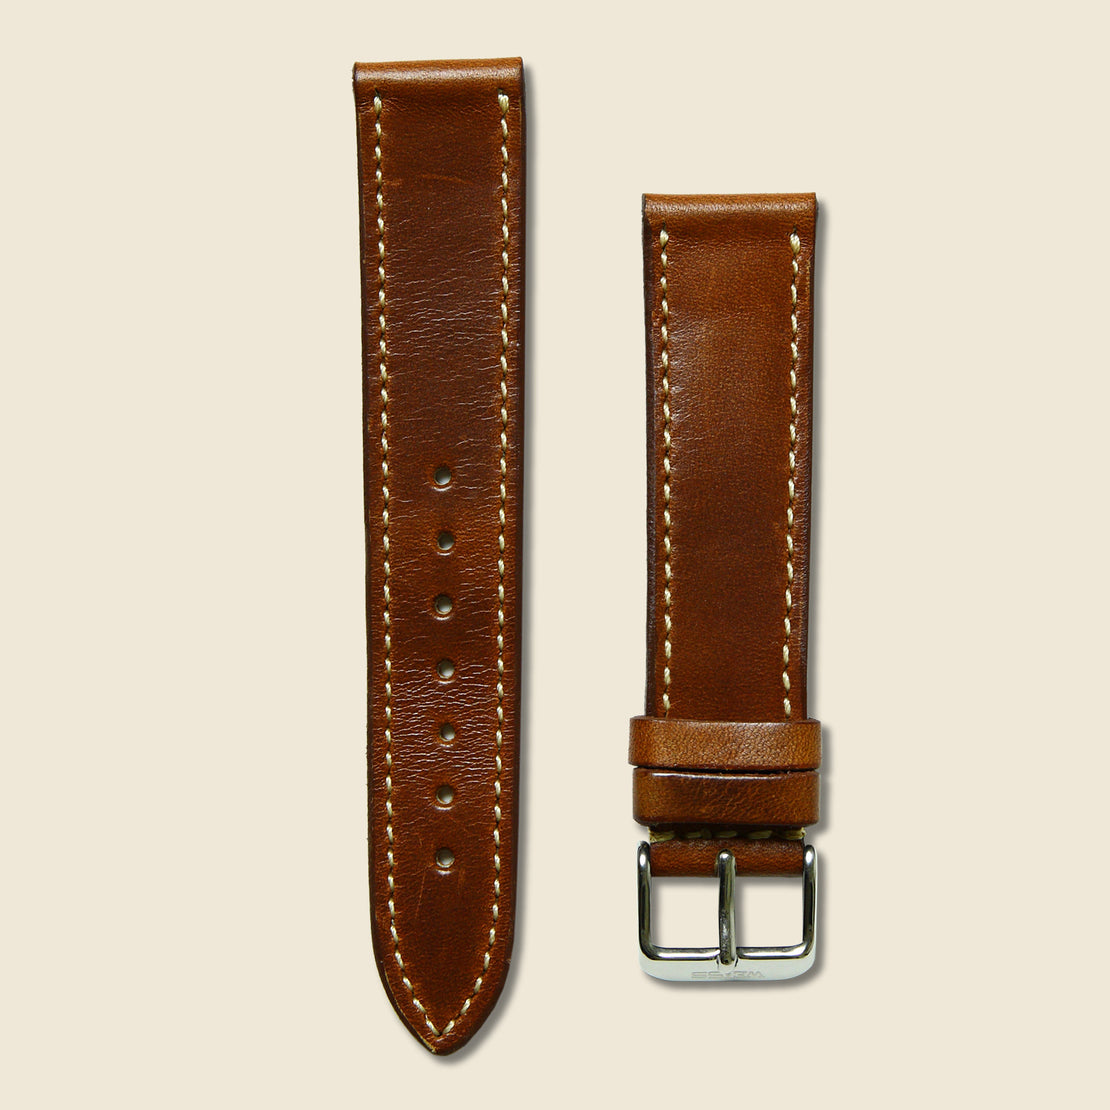 Weiss Watch Co Horween Leather Watch Band - Natural